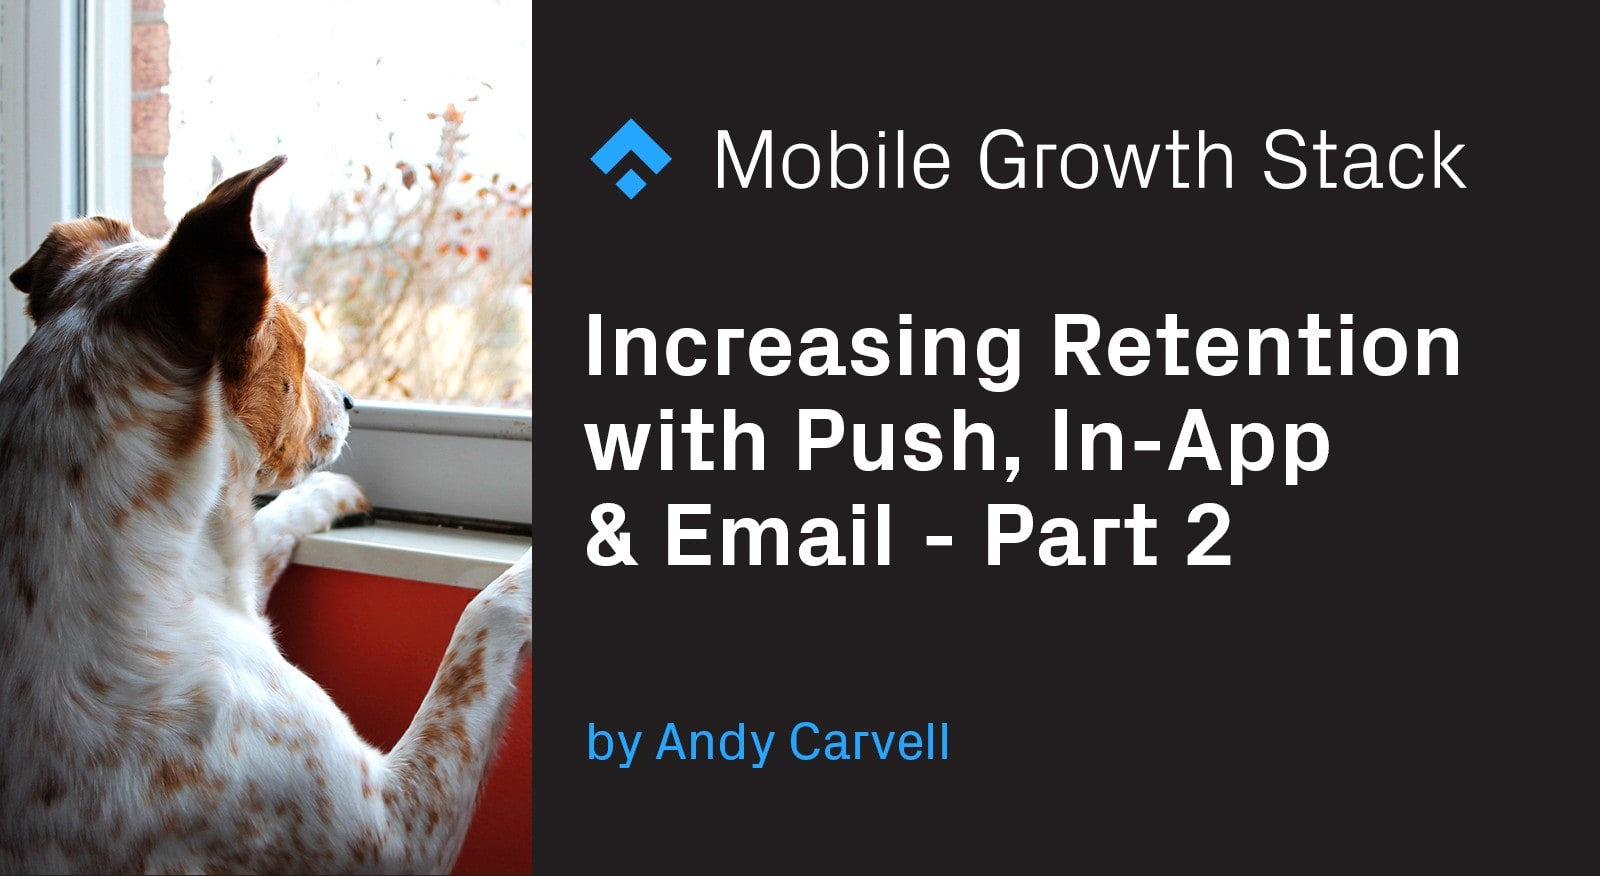 Increasing Retention with Push, In-App and Email Part 2- Developing a Mobile CRM Strategy for Retention